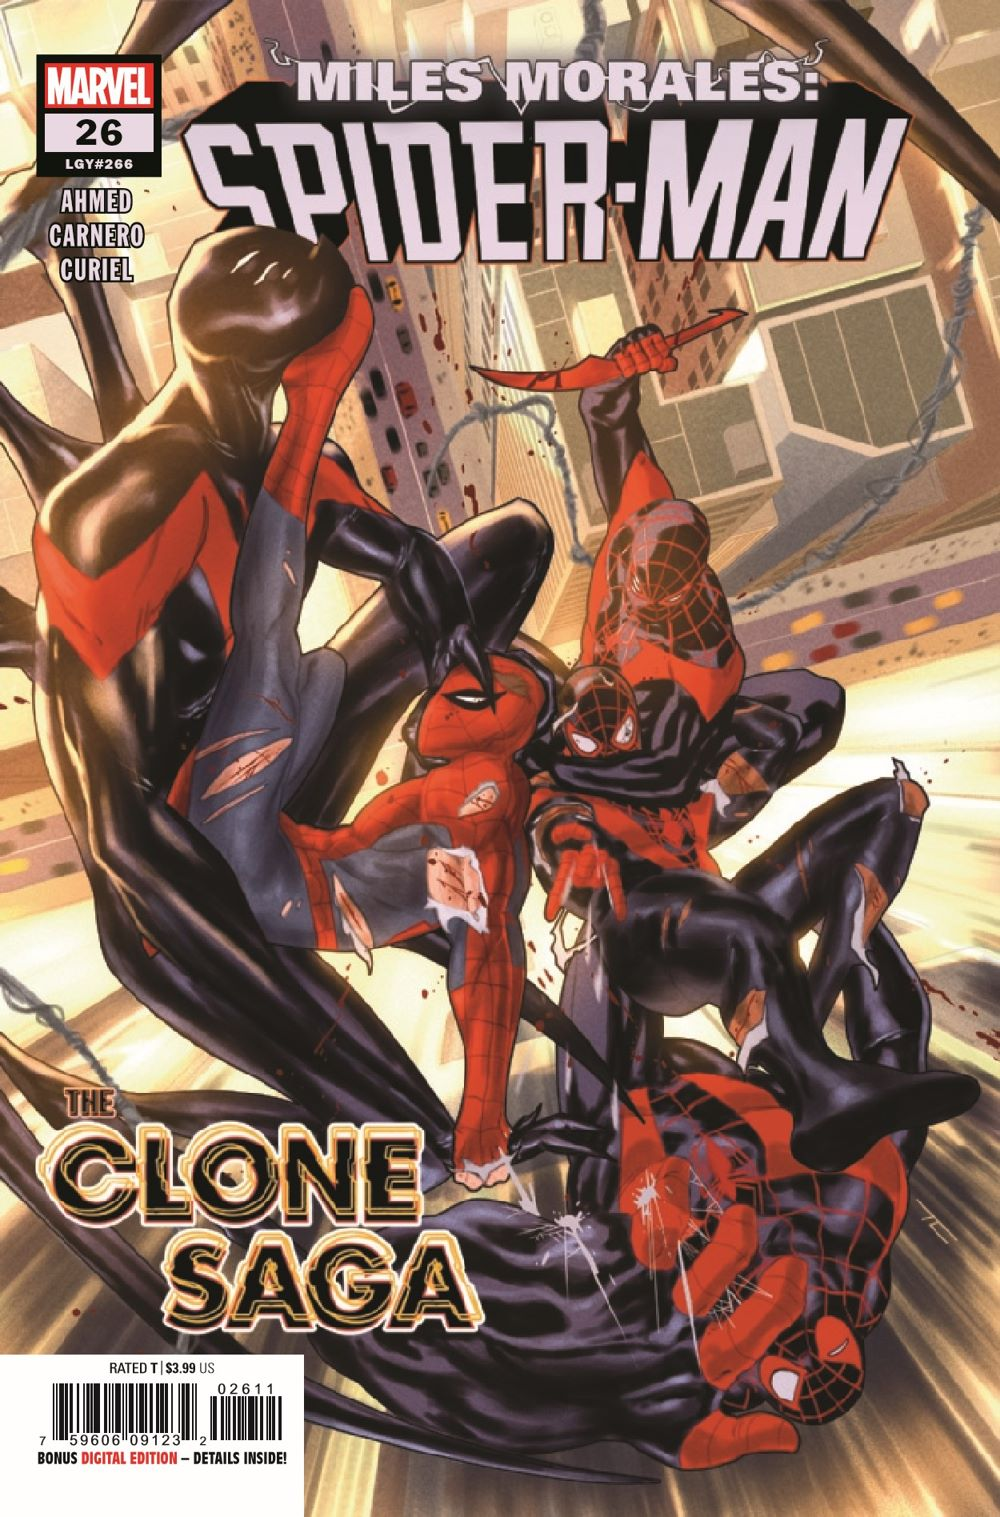 MMSM2018026_Preview-1 ComicList Previews: MILES MORALES SPIDER-MAN #26